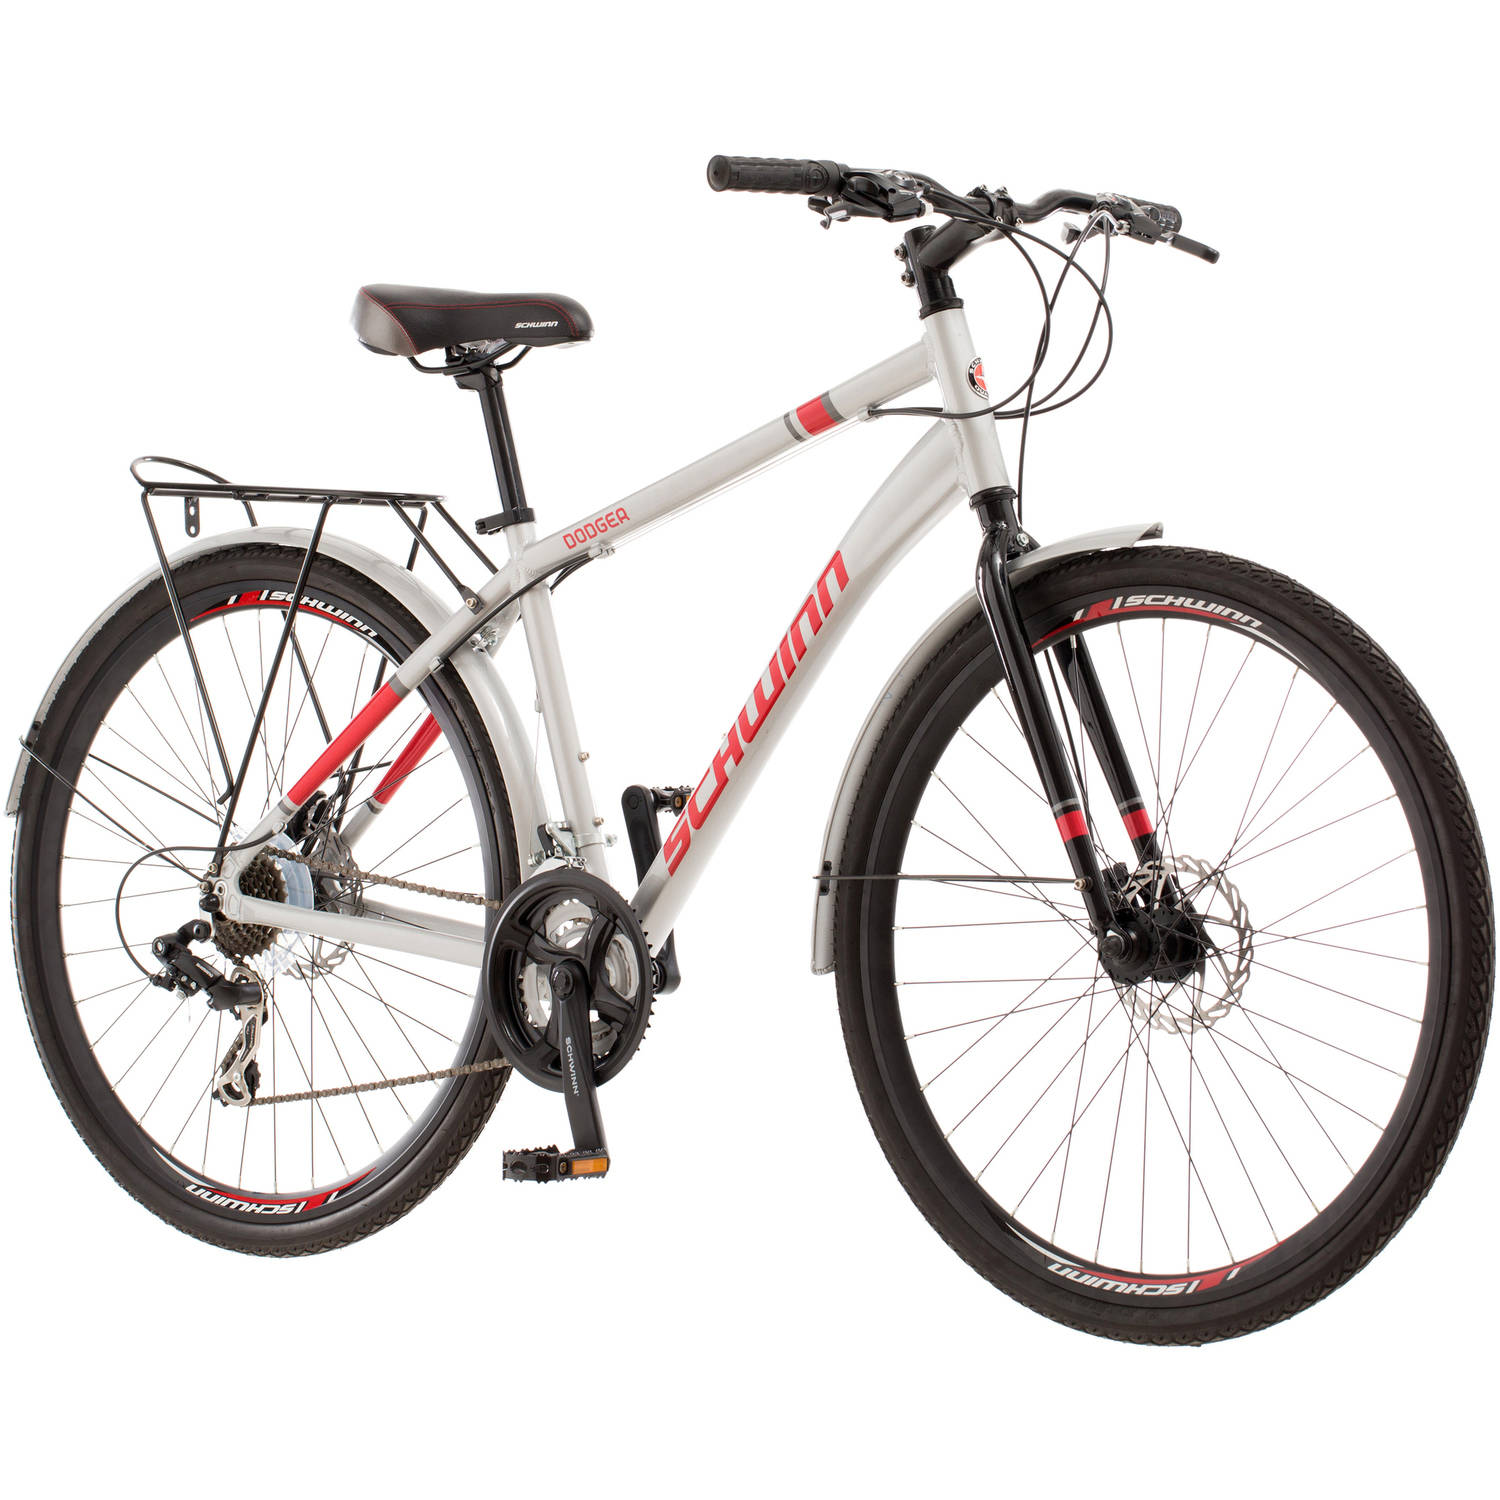 700C Men's Schwinn Dodger Hybrid Bike, Silver by Pacific Cycle